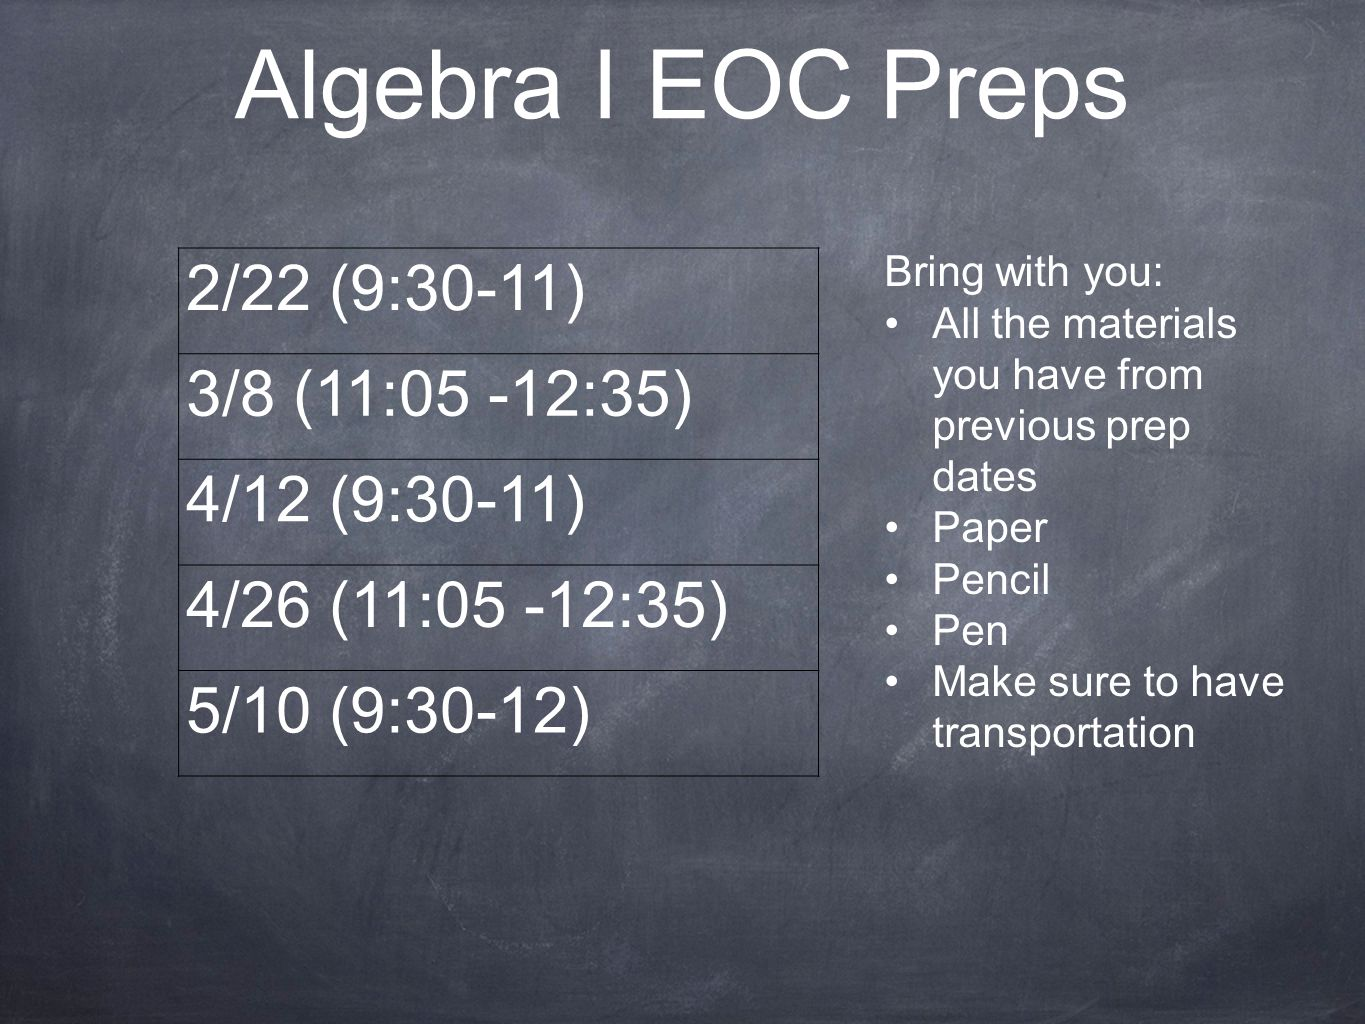 Algebra I EOC Preps 2/22 (9:30-11) 3/8 (11:05 -12:35) 4/12 (9:30-11) 4/26 (11:05 -12:35) 5/10 (9:30-12) Bring with you: All the materials you have fro